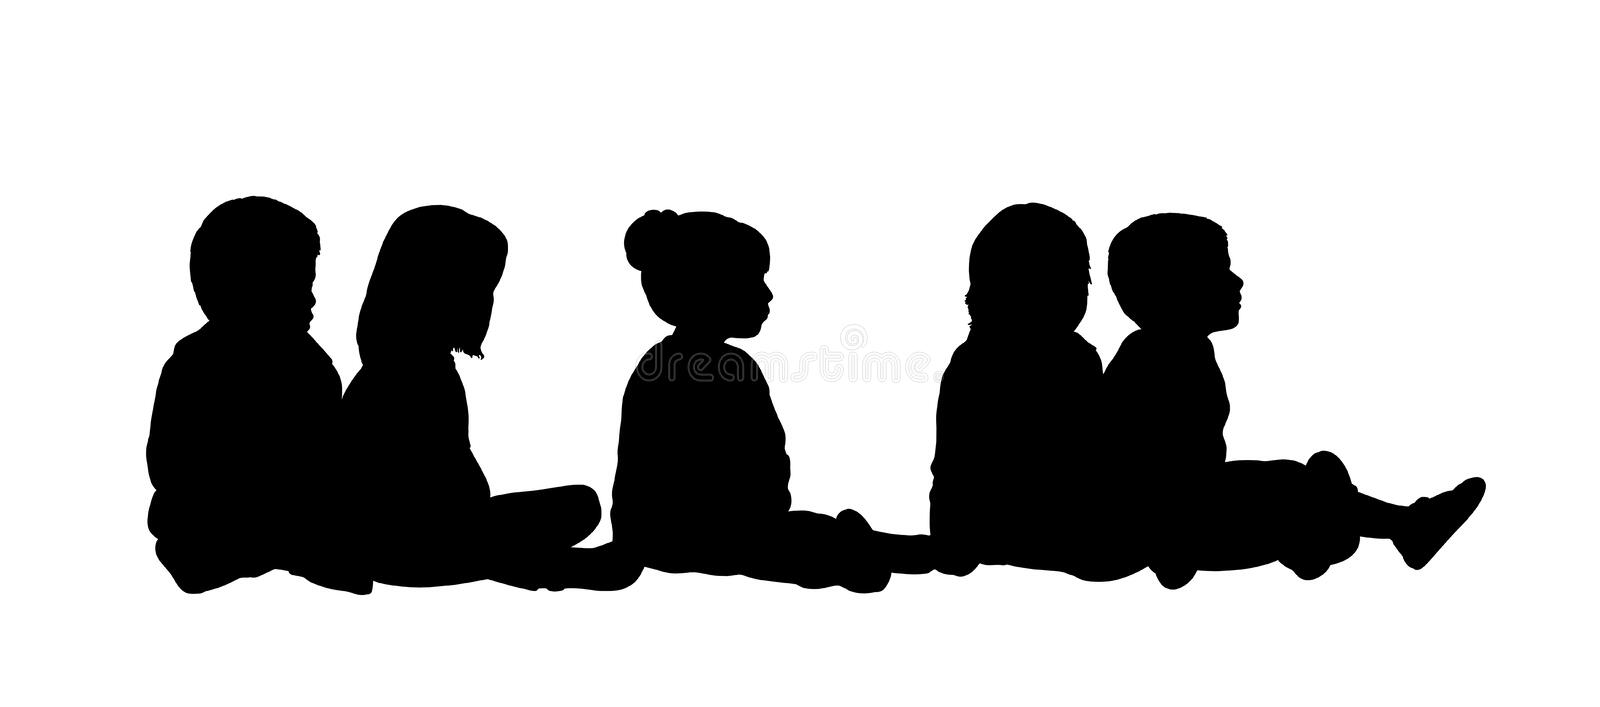 Medium Group Of Children Seated Silhouette 6 Stock ...